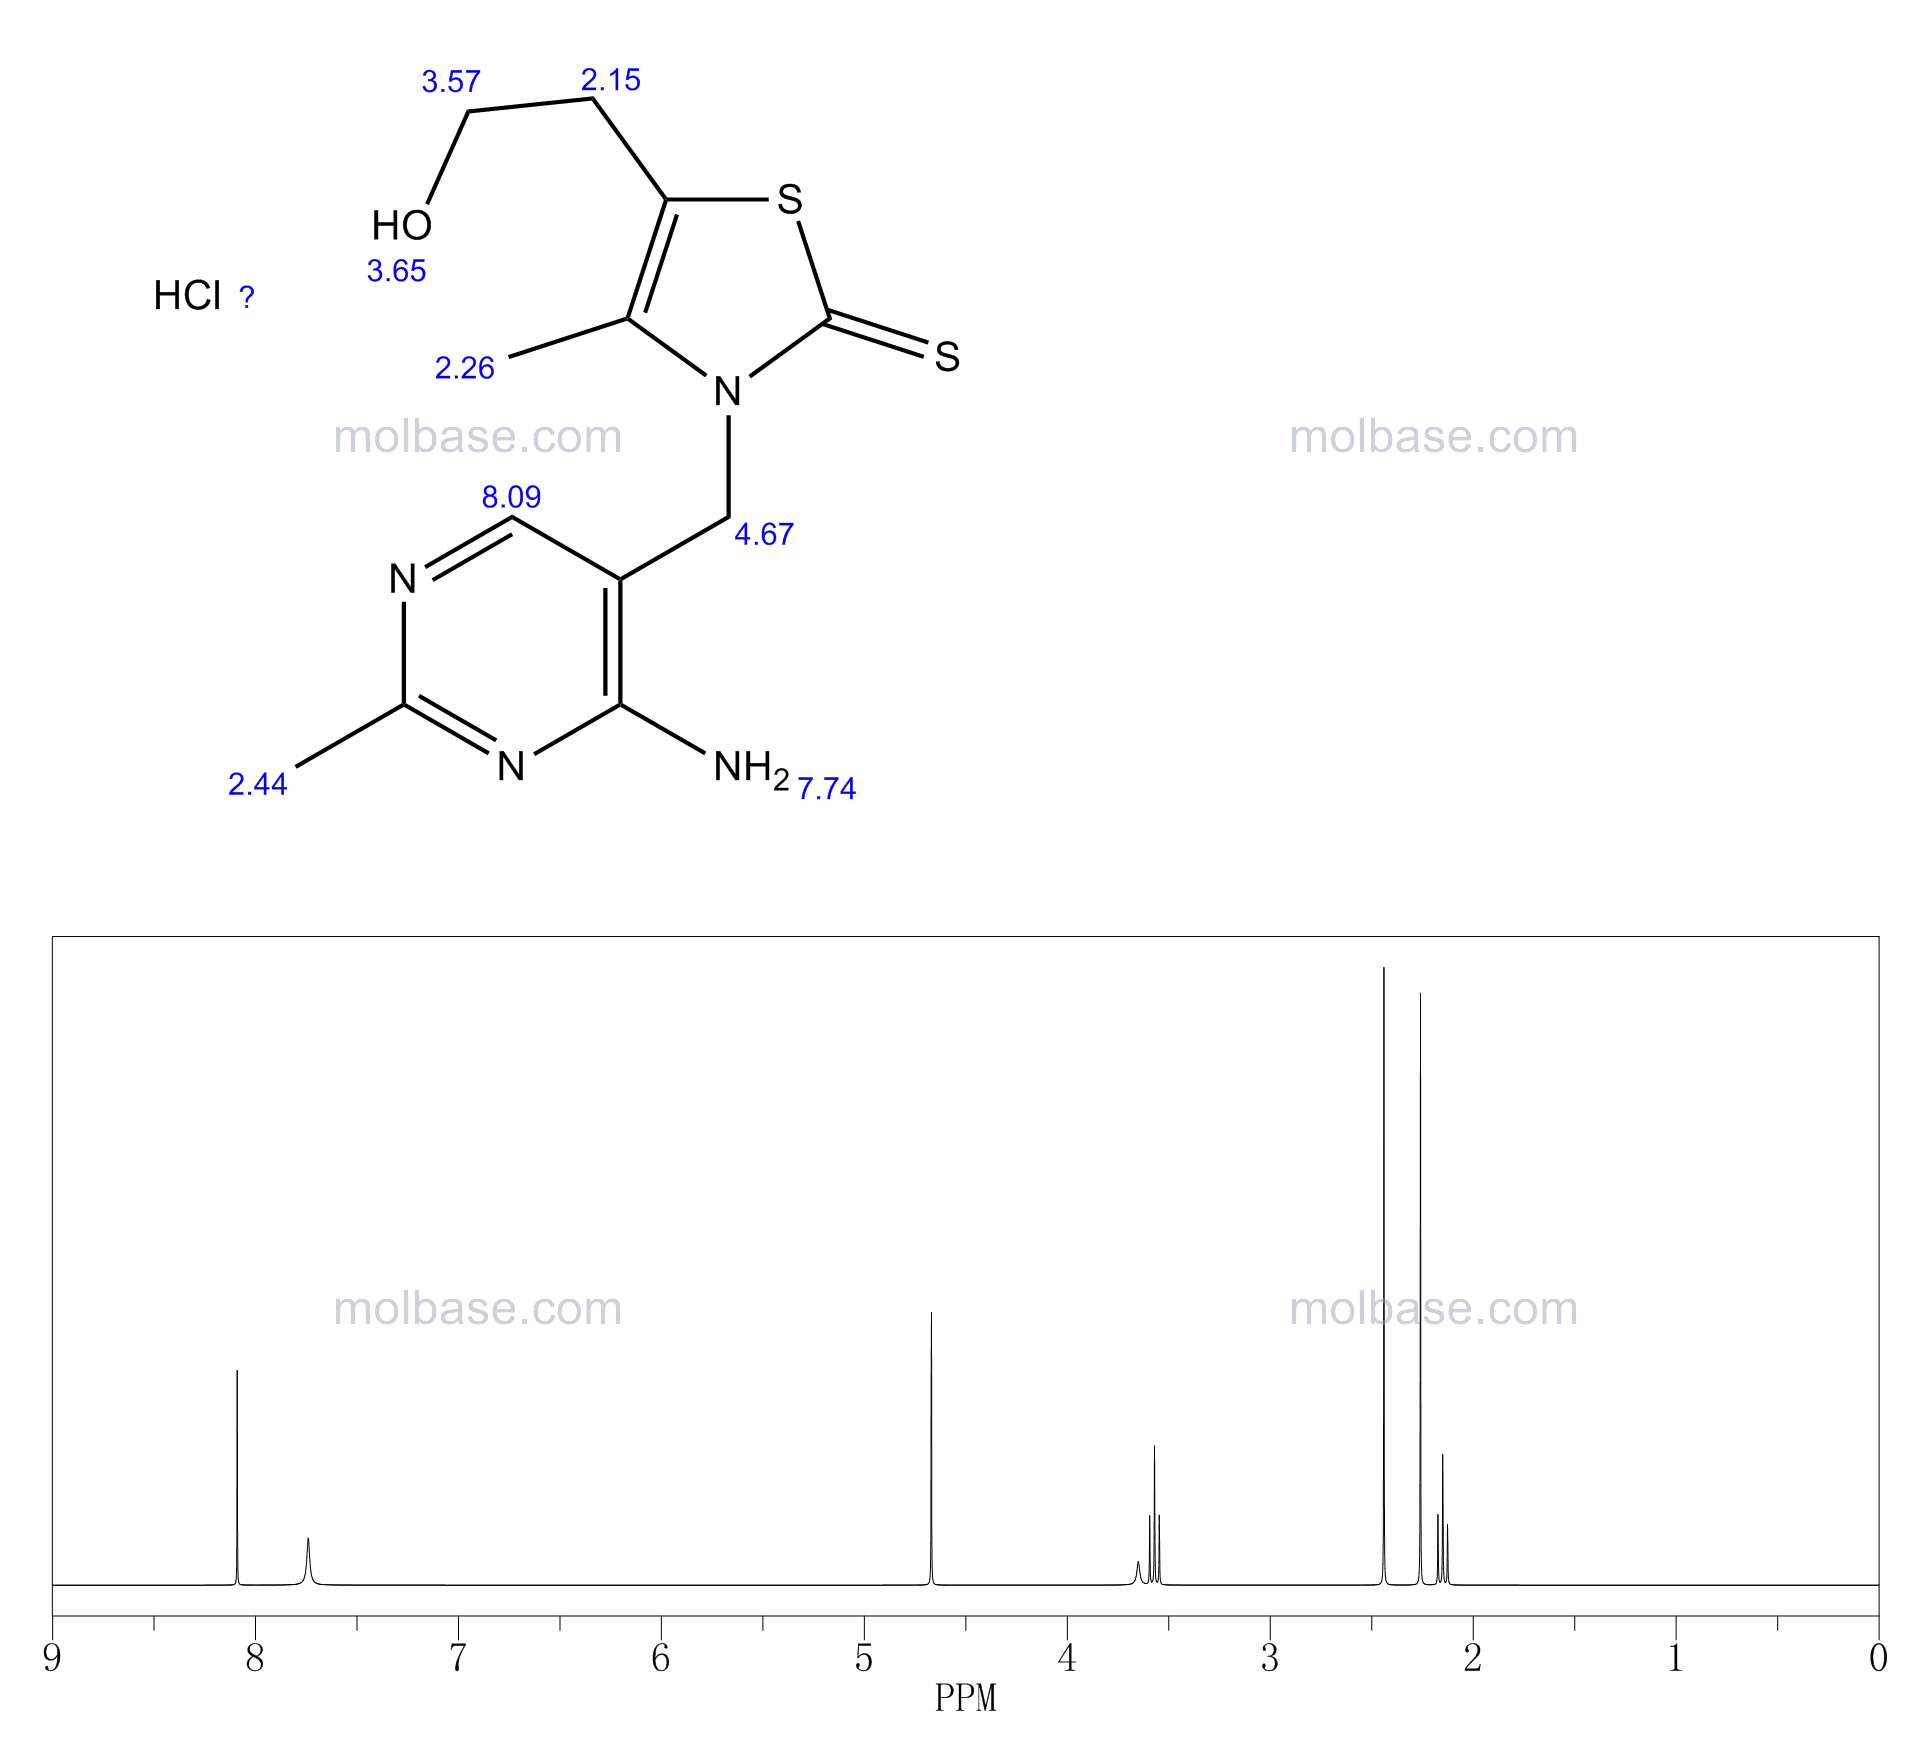 3-[(4-amino-2-methylpyrimidin-5-yl)methyl]-5-(2-hydroxyethyl)-4-methyl-1,3-thiazole-2-thione,hydrochloride NMR spectra analysis, Chemical CAS NO. 2443-50-7 NMR spectral analysis, 3-[(4-amino-2-methylpyrimidin-5-yl)methyl]-5-(2-hydroxyethyl)-4-methyl-1,3-thiazole-2-thione,hydrochloride C-NMR spectrum